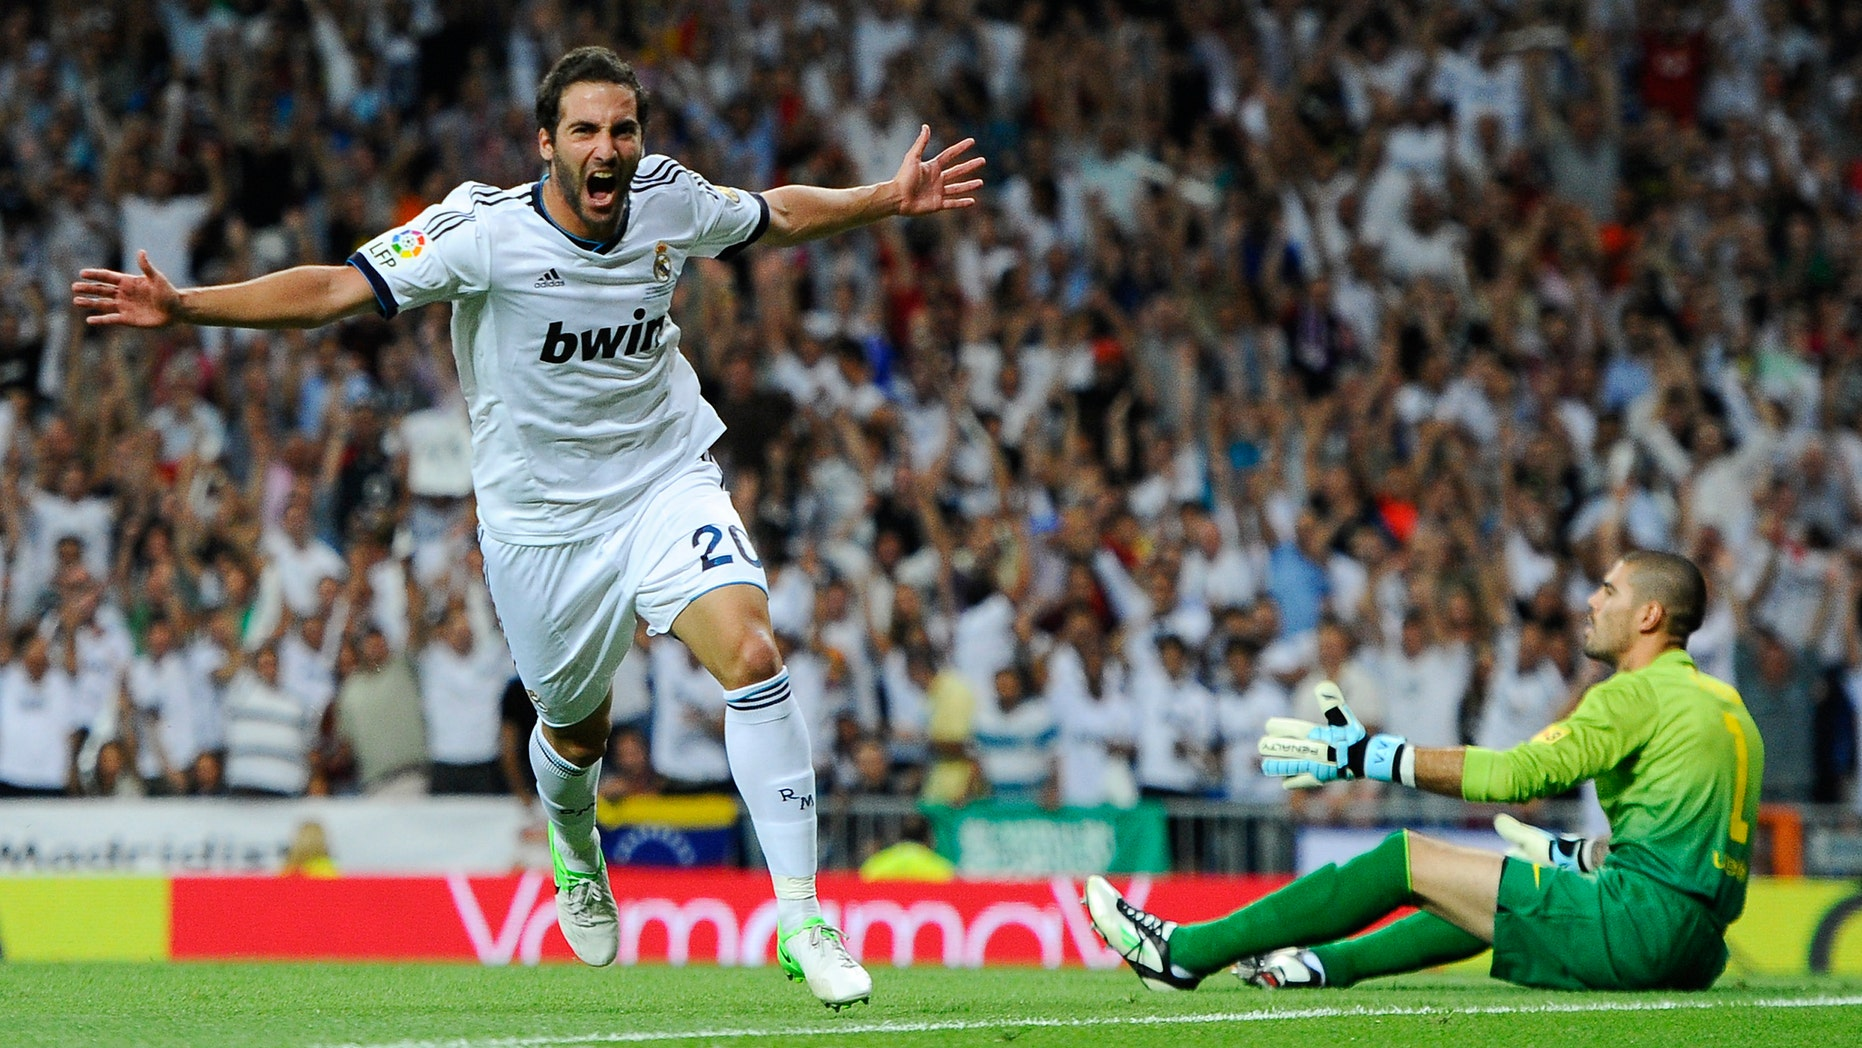 MADRID, SPAIN - AUGUST 29:  Gonzalo Higuain of Real Madrid CF celebrates after scoring the opening goal during the Super Cup second leg match betwen Real Madrid and FC Barcelona at Estadio Santiago Bernabeu on August 29, 2012 in Madrid, Spain.  (Photo by David Ramos/Getty Images)